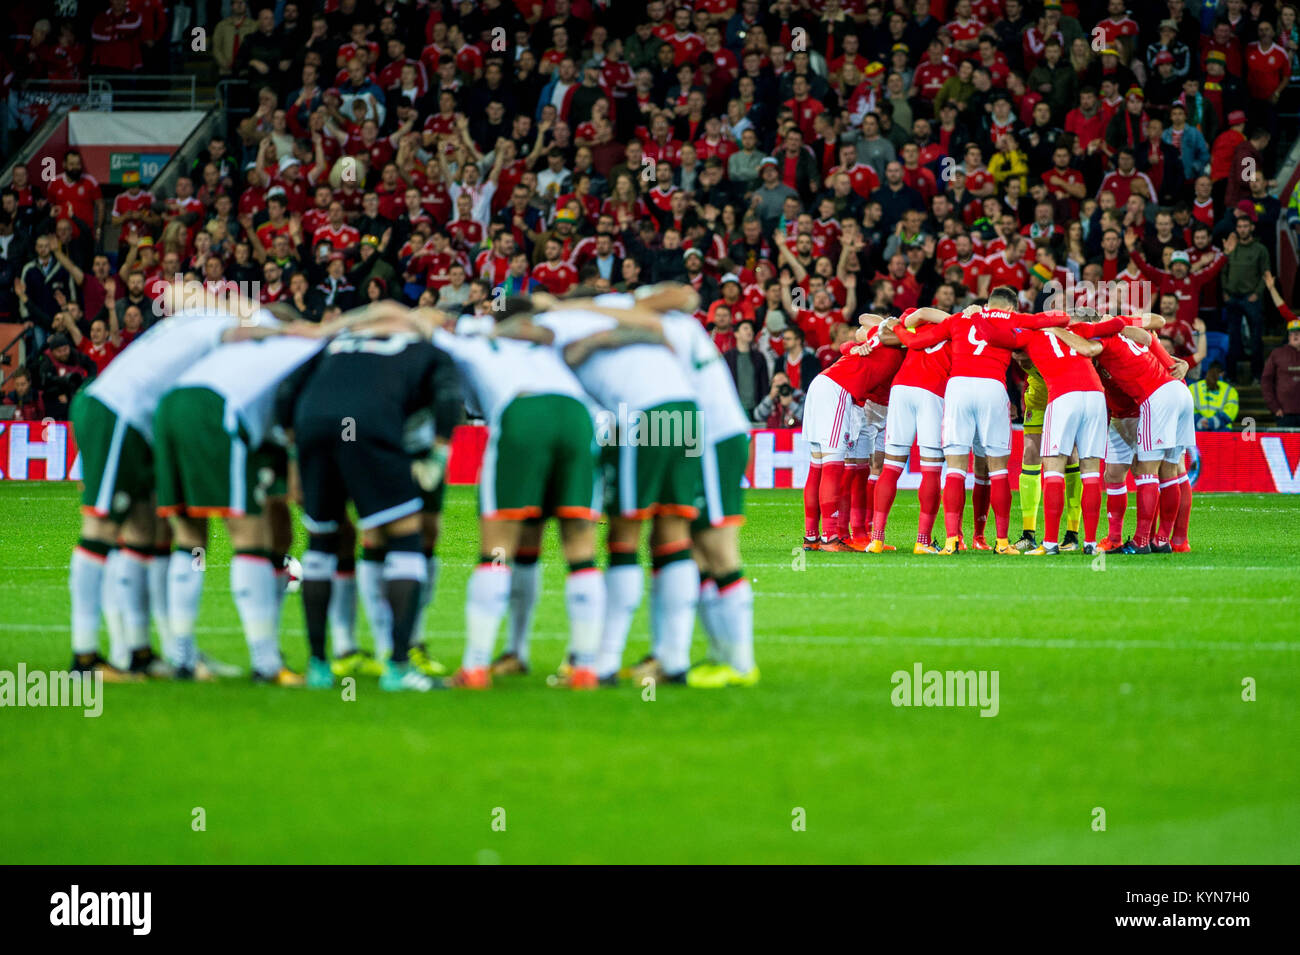 Cardiff Wales October 09 Team Huddles Ahead Of The Fifa World Cup Qualifying Match Between And Ireland At City Stadium On